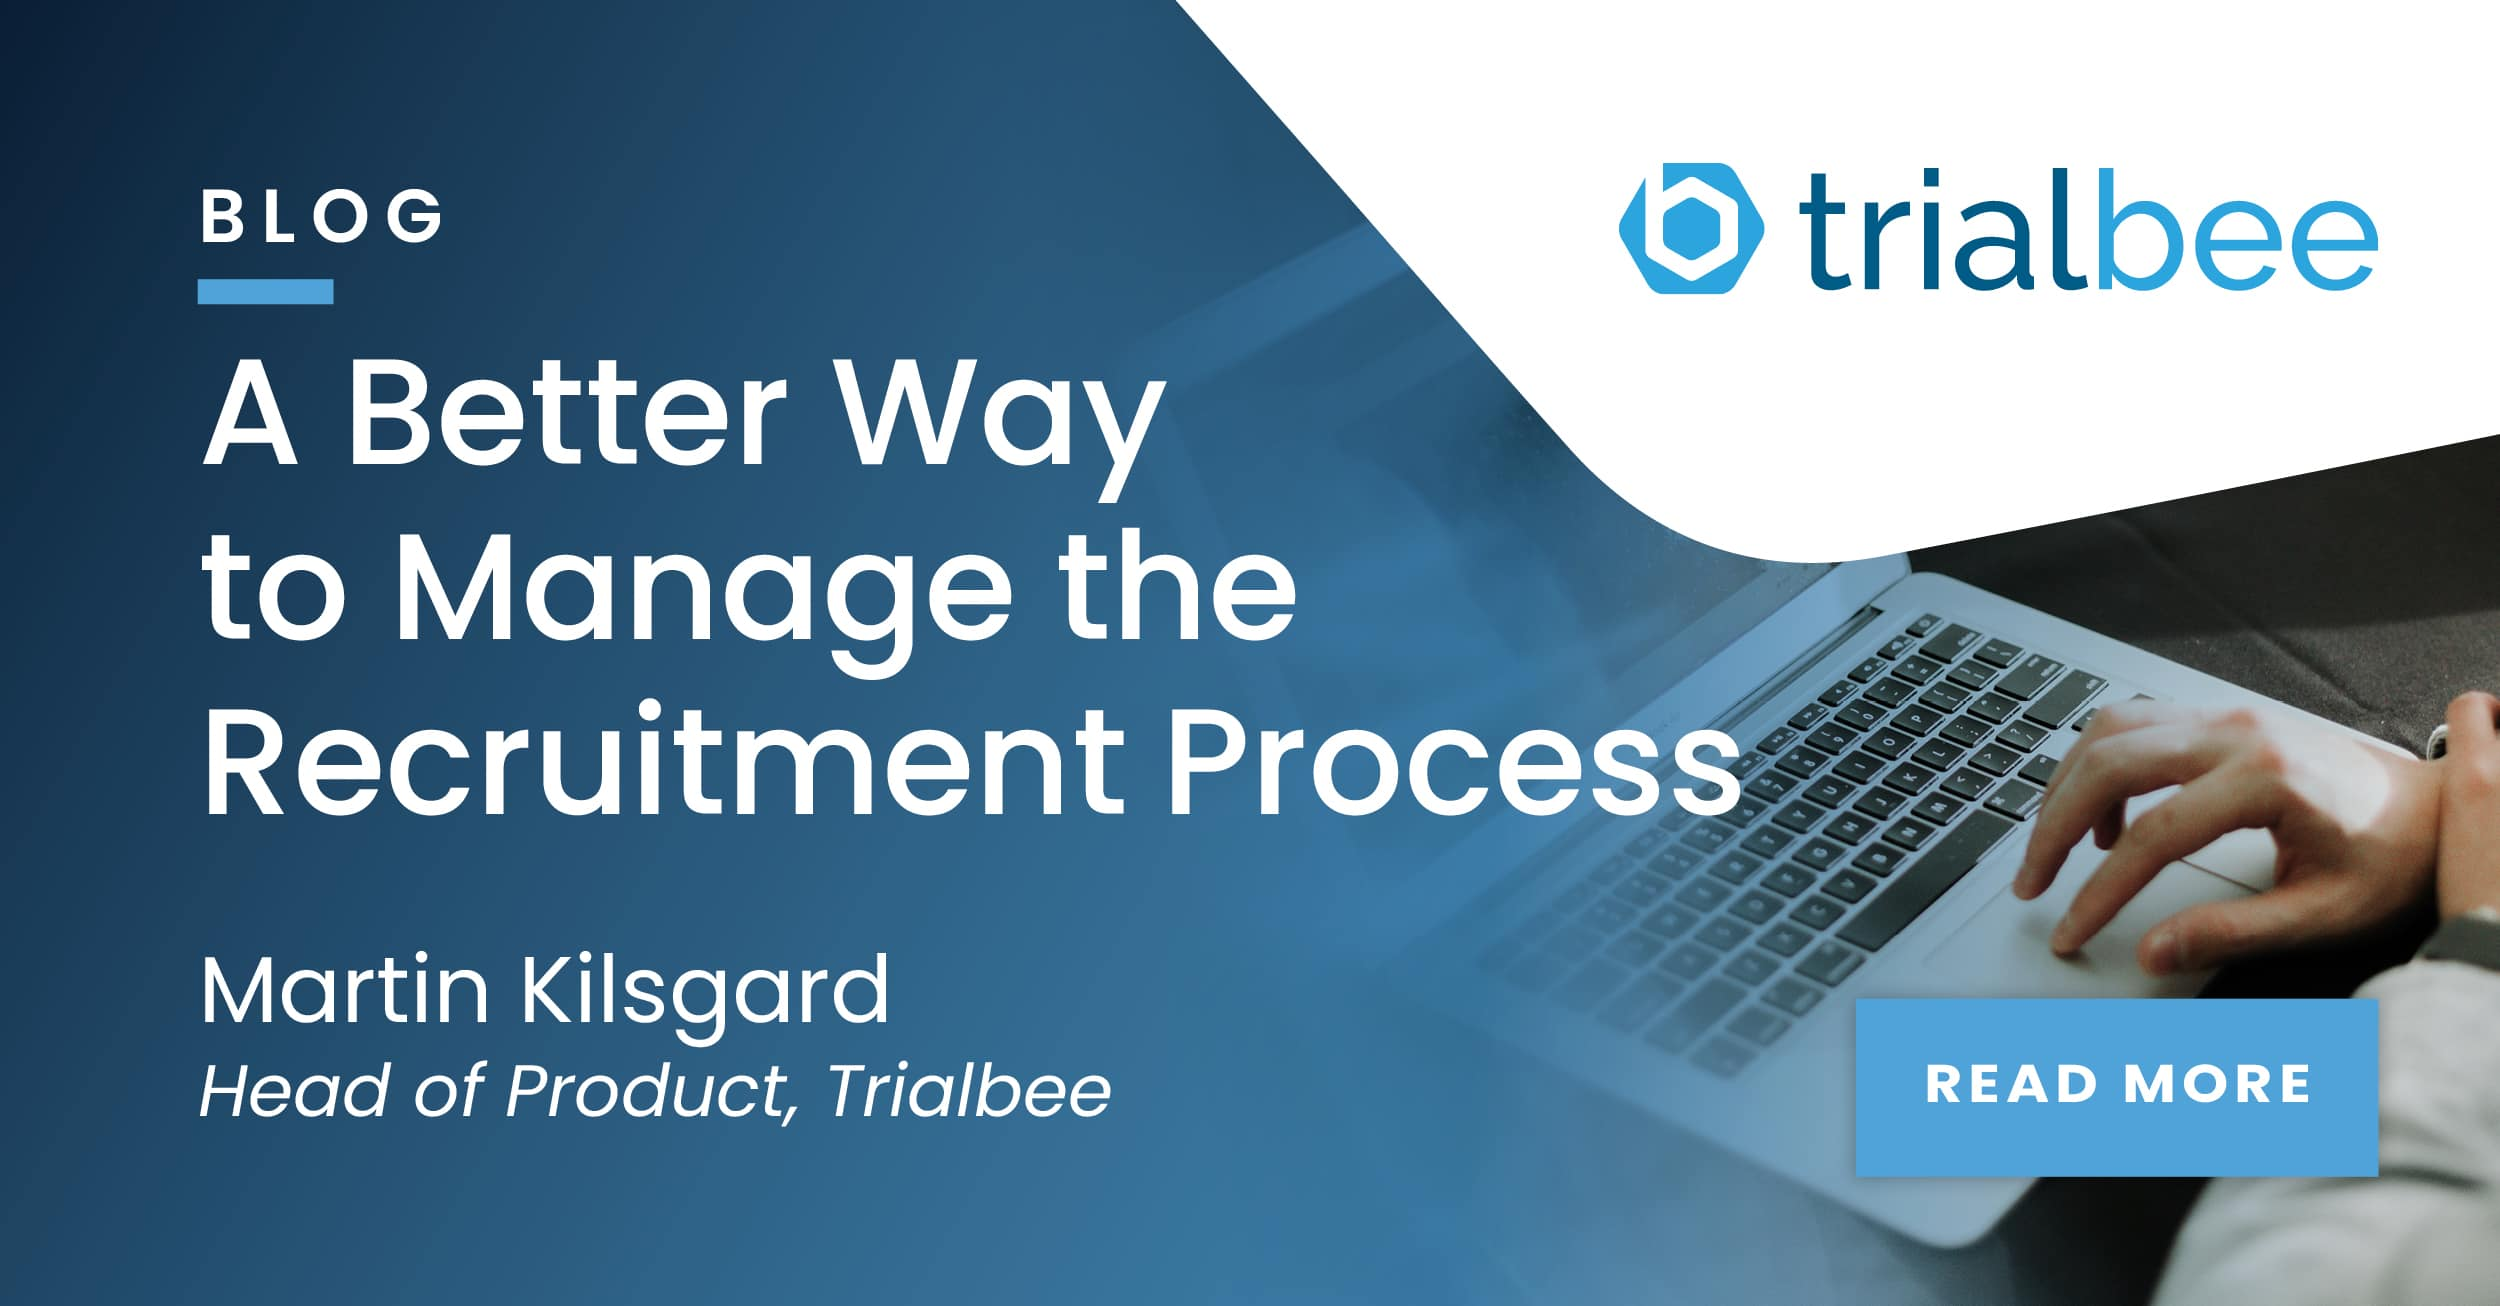 A Better Way to Manage the Recruitment Process